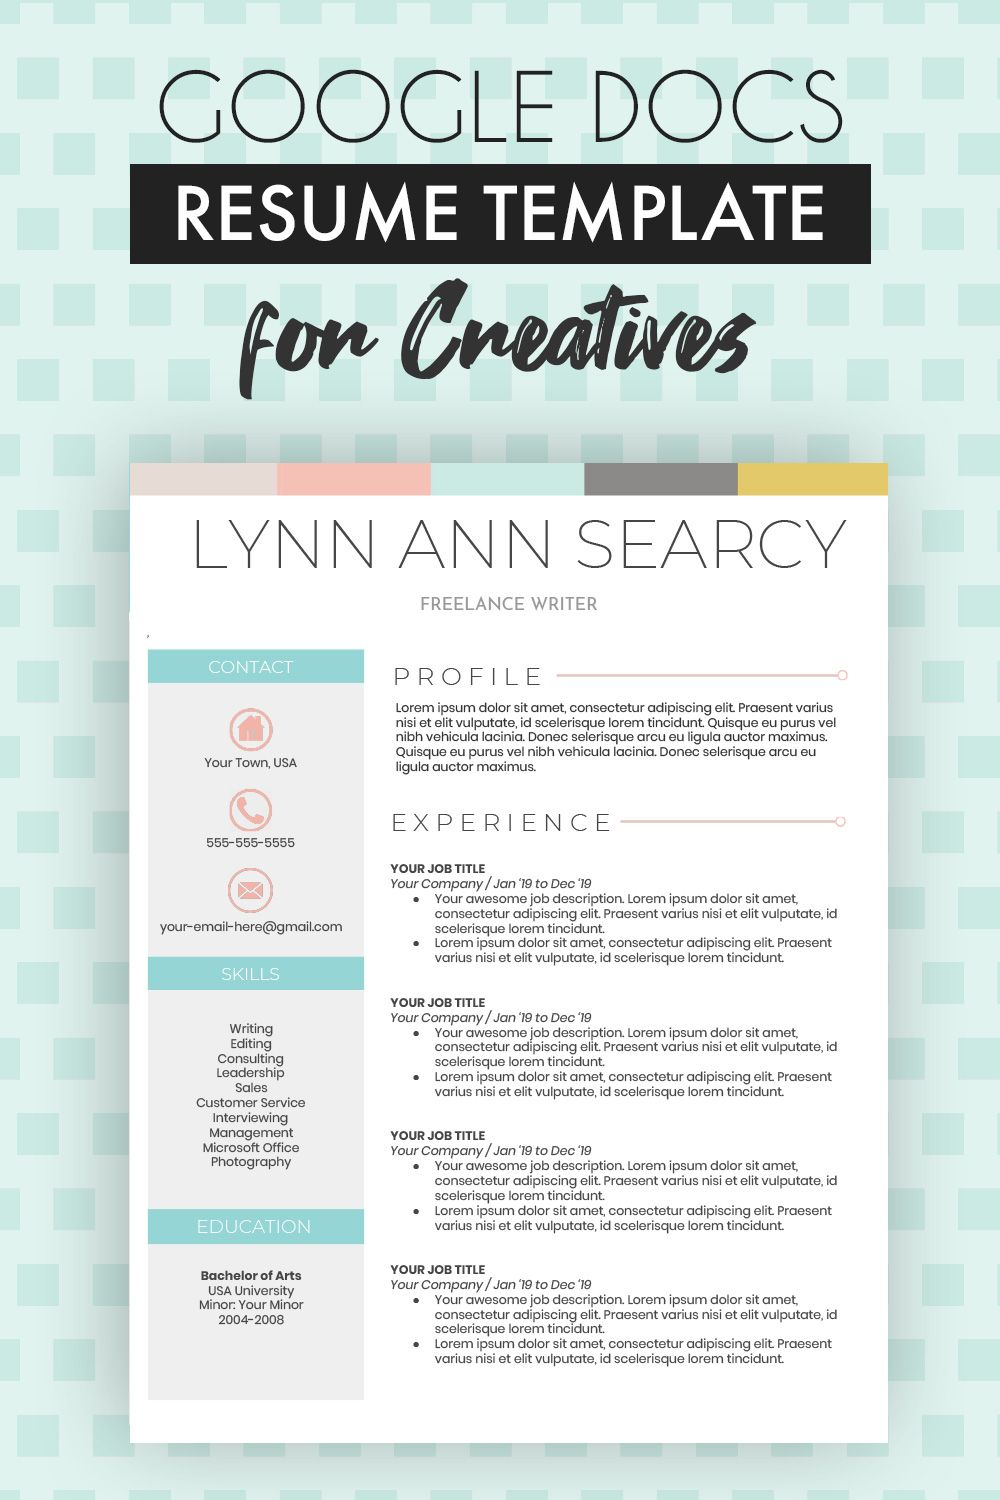 Google Docs Resume Template One Page Plus Cover Letter